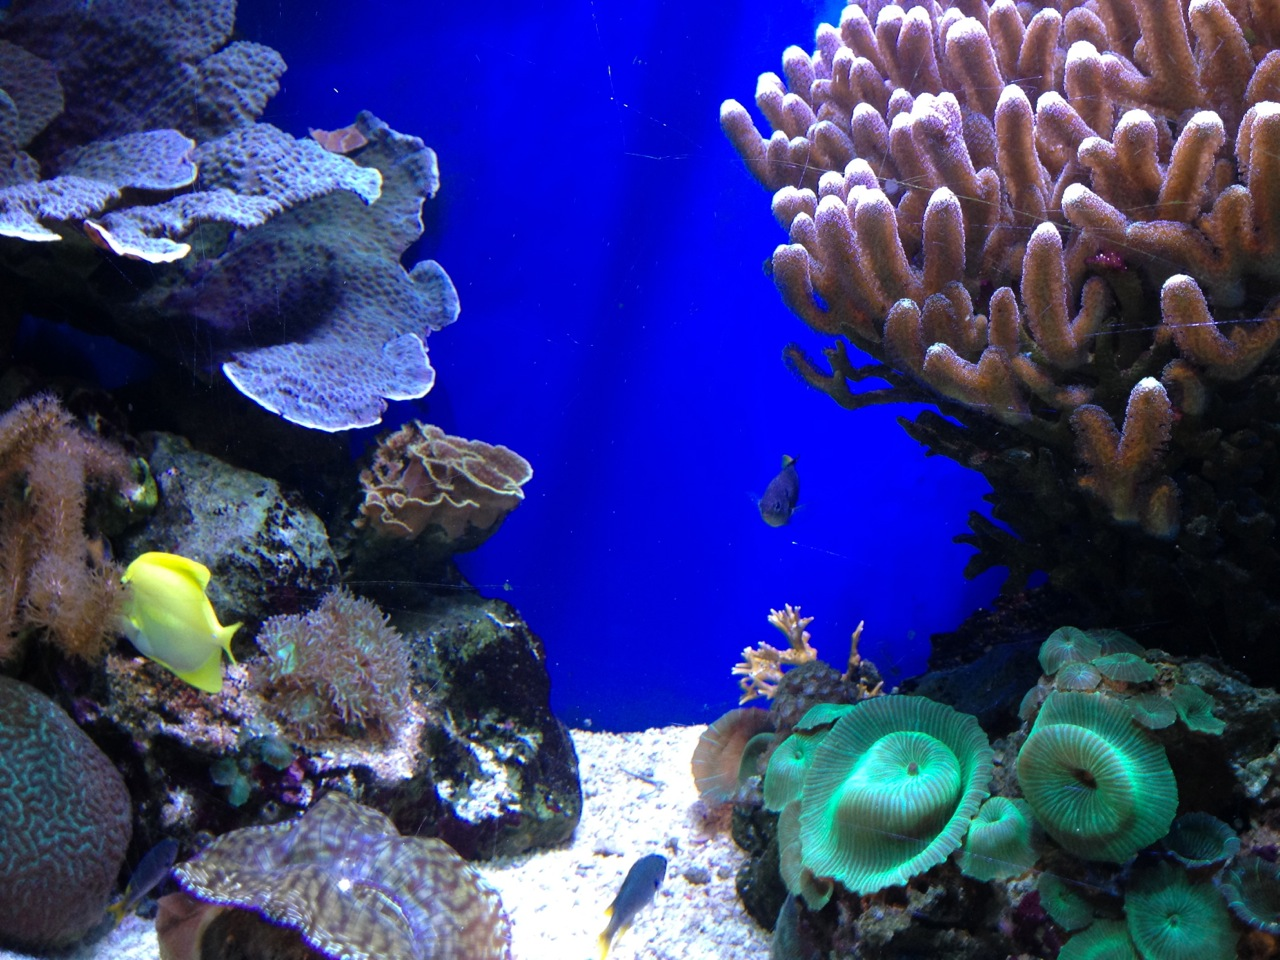 Family day out blue reef aquarium newquay hayley spurway for Discount aquarium fish and reef